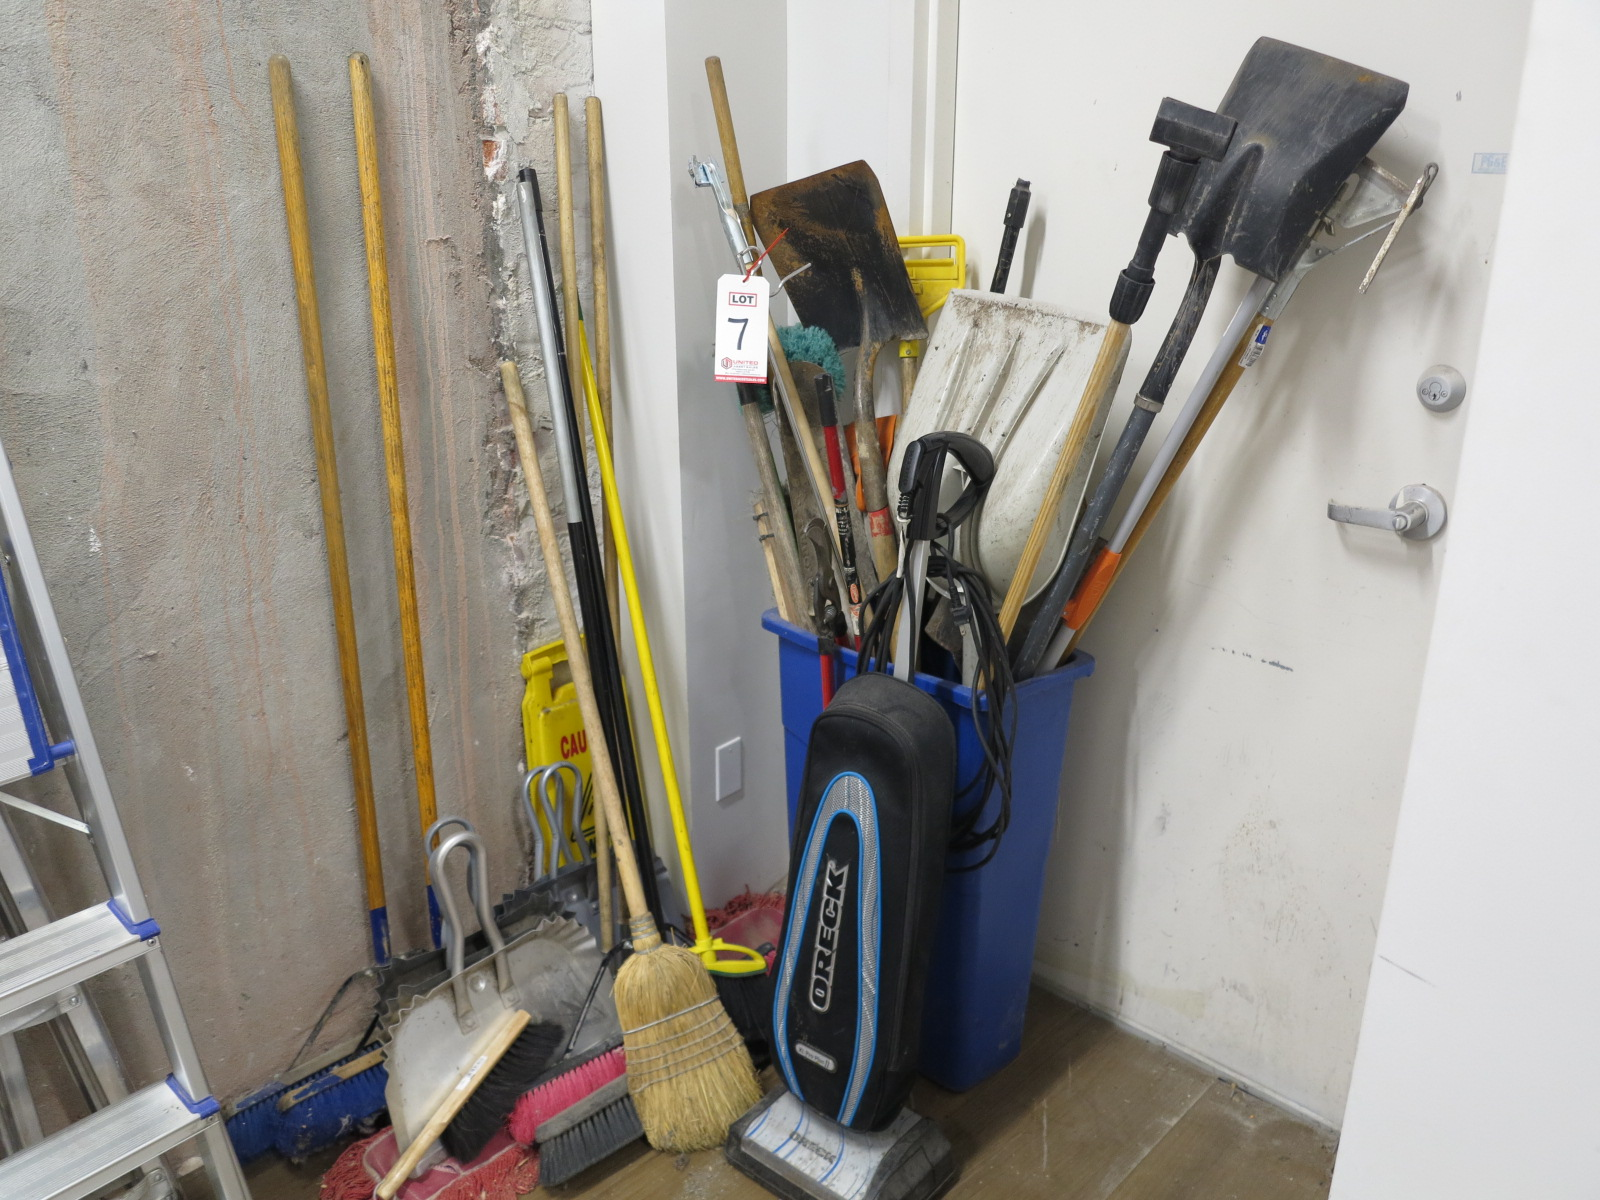 Lot 7 - LOT - BROOMS, SHOVELS, DUST MOPS, VACUUM, DUST PANS